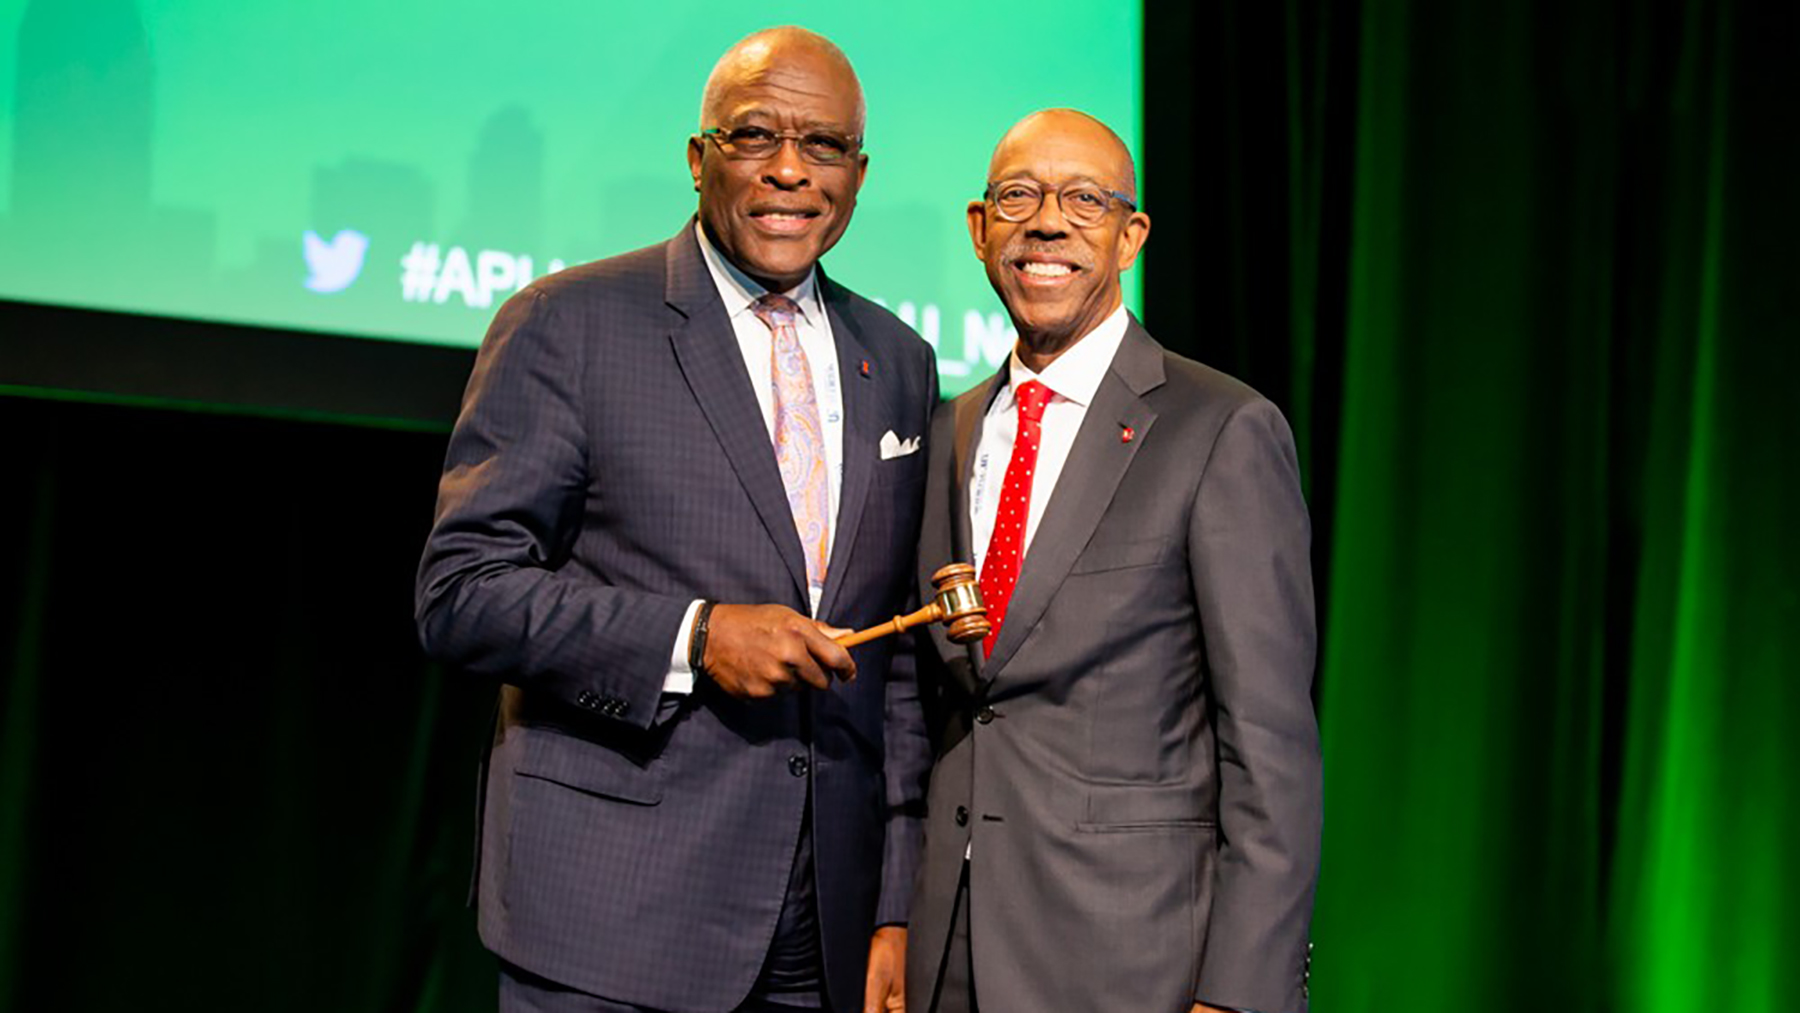 gavel is passed from Michael Drake, President of The Ohio State University and Past-Chair of the APLU Board